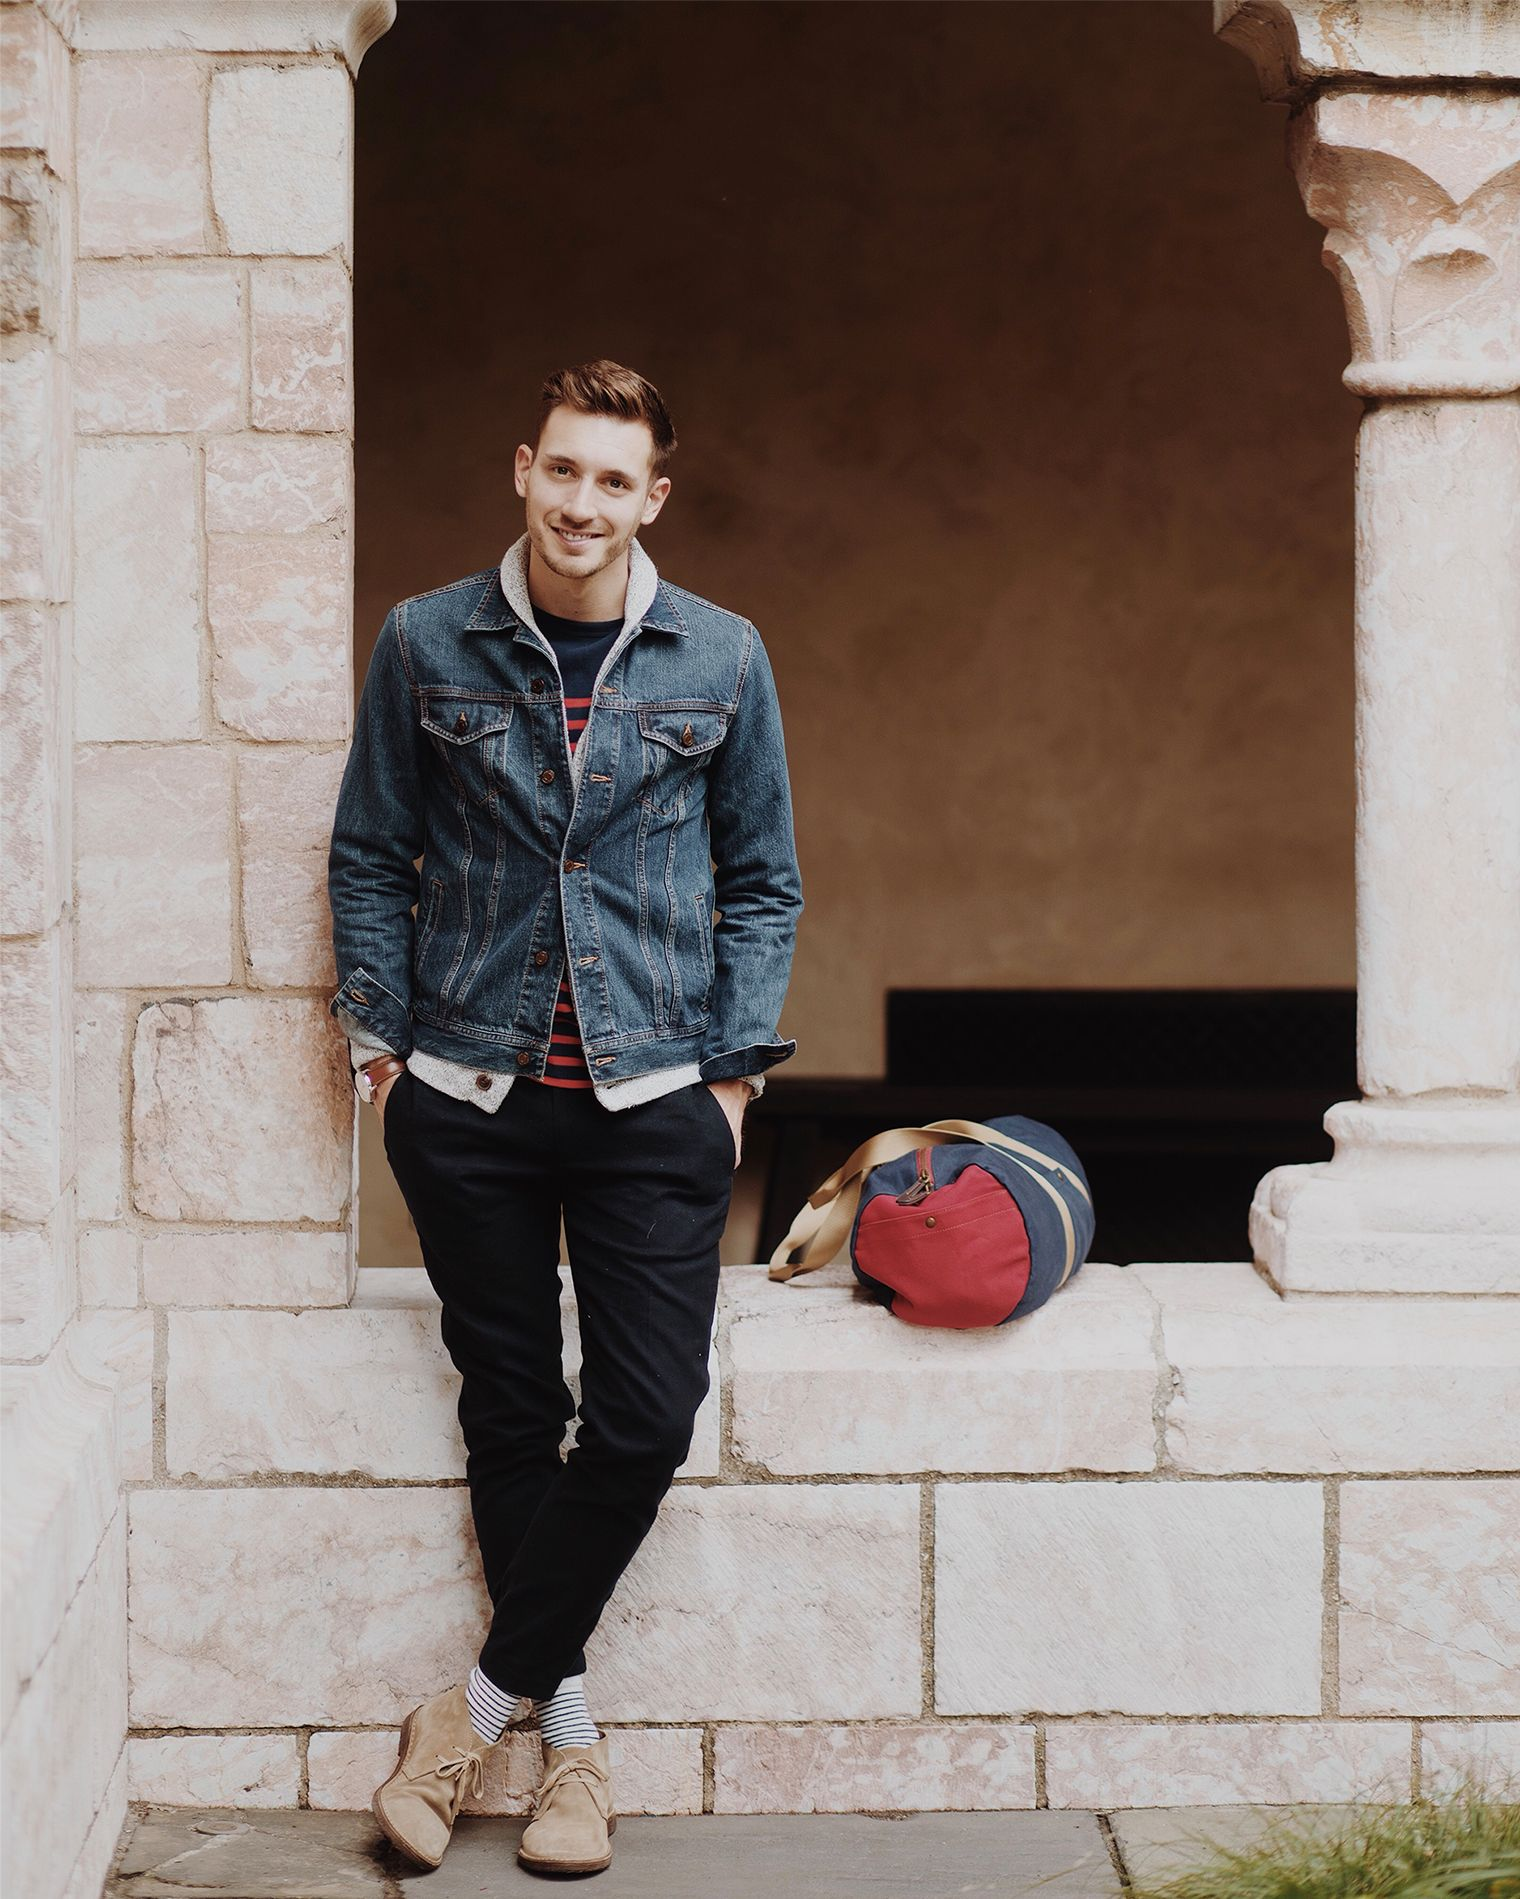 bffa8617c4df Playful Prep  Men s Fall Fashion 2017  ad  oldnavy  sayhi - Once I had the  denim jacket set I started to think about how to give the look a playful  prep ...